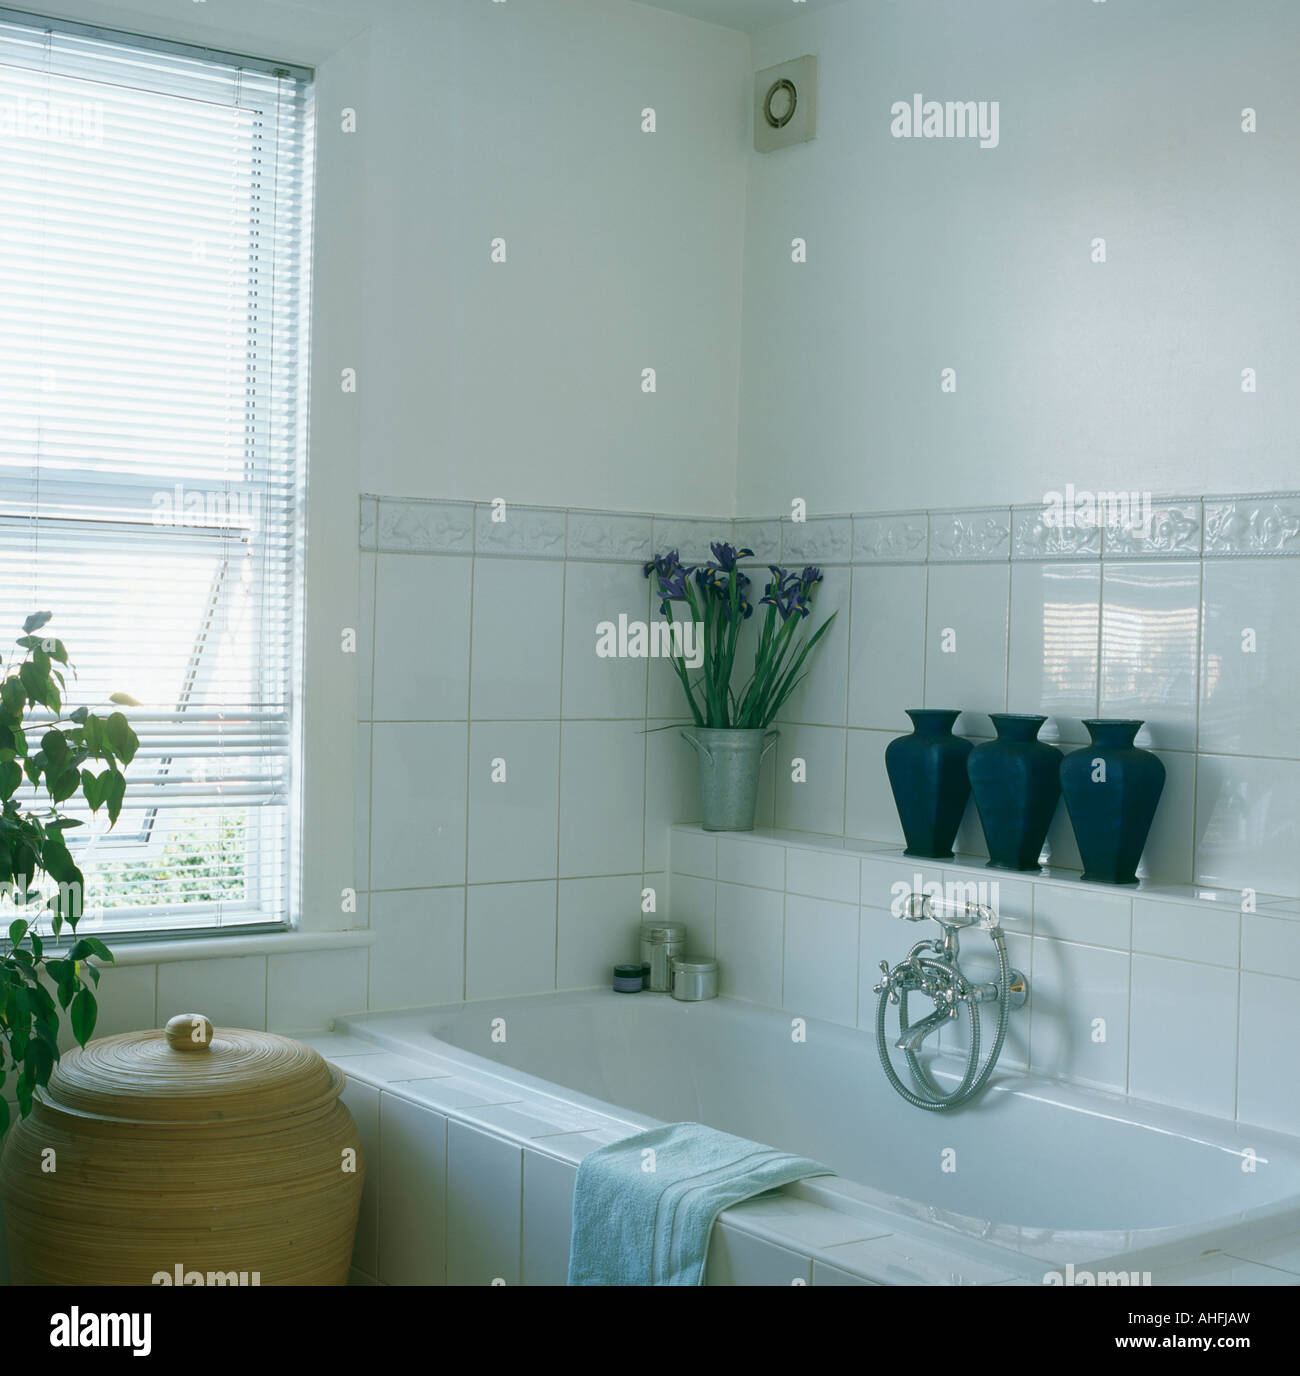 Row of pots on tiled shelf above bath in white bathroom with tiled ...